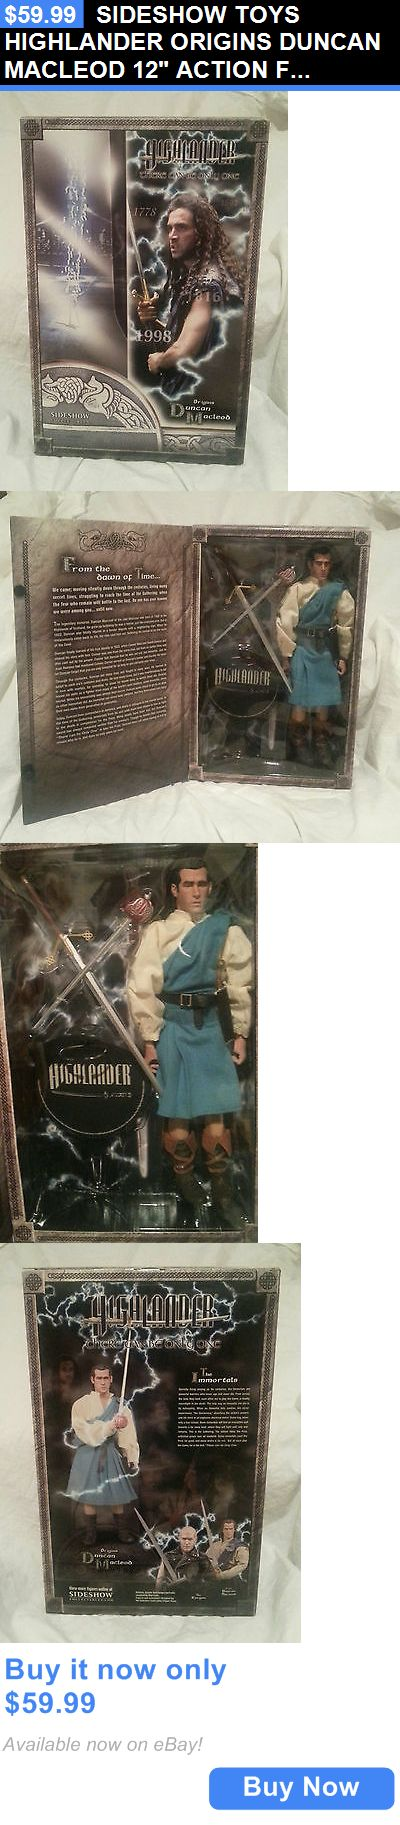 Toys And Games: Sideshow Toys Highlander Origins Duncan Macleod 12 Action Figure....New In Box BUY IT NOW ONLY: $59.99